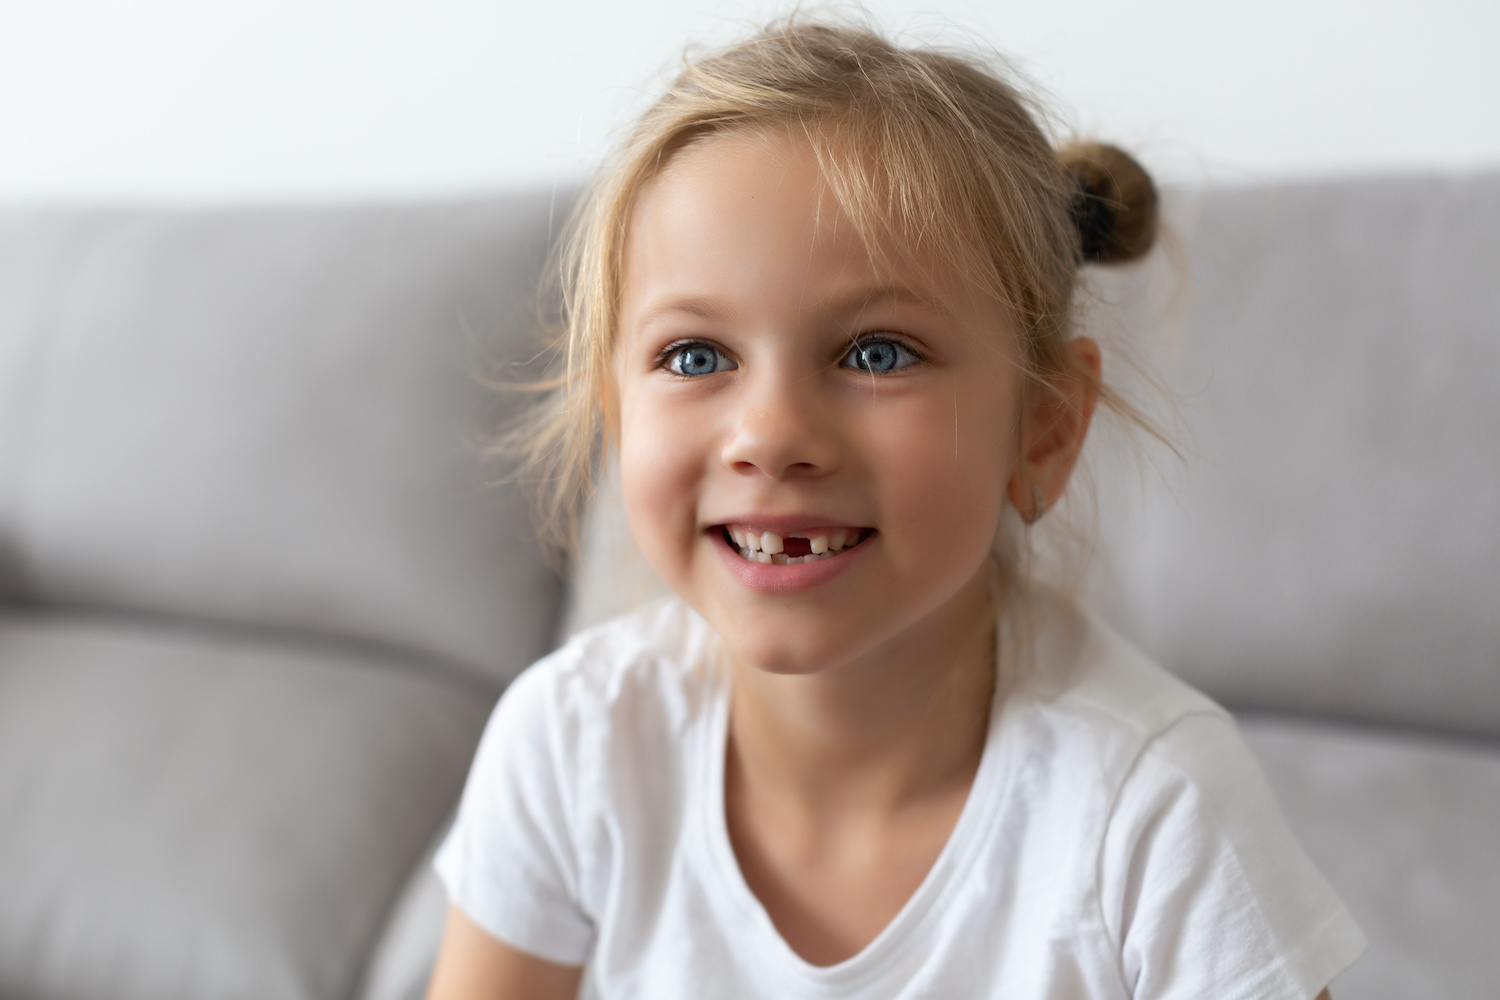 Halitosis in Children: How To Help Your Child's Bad Breath